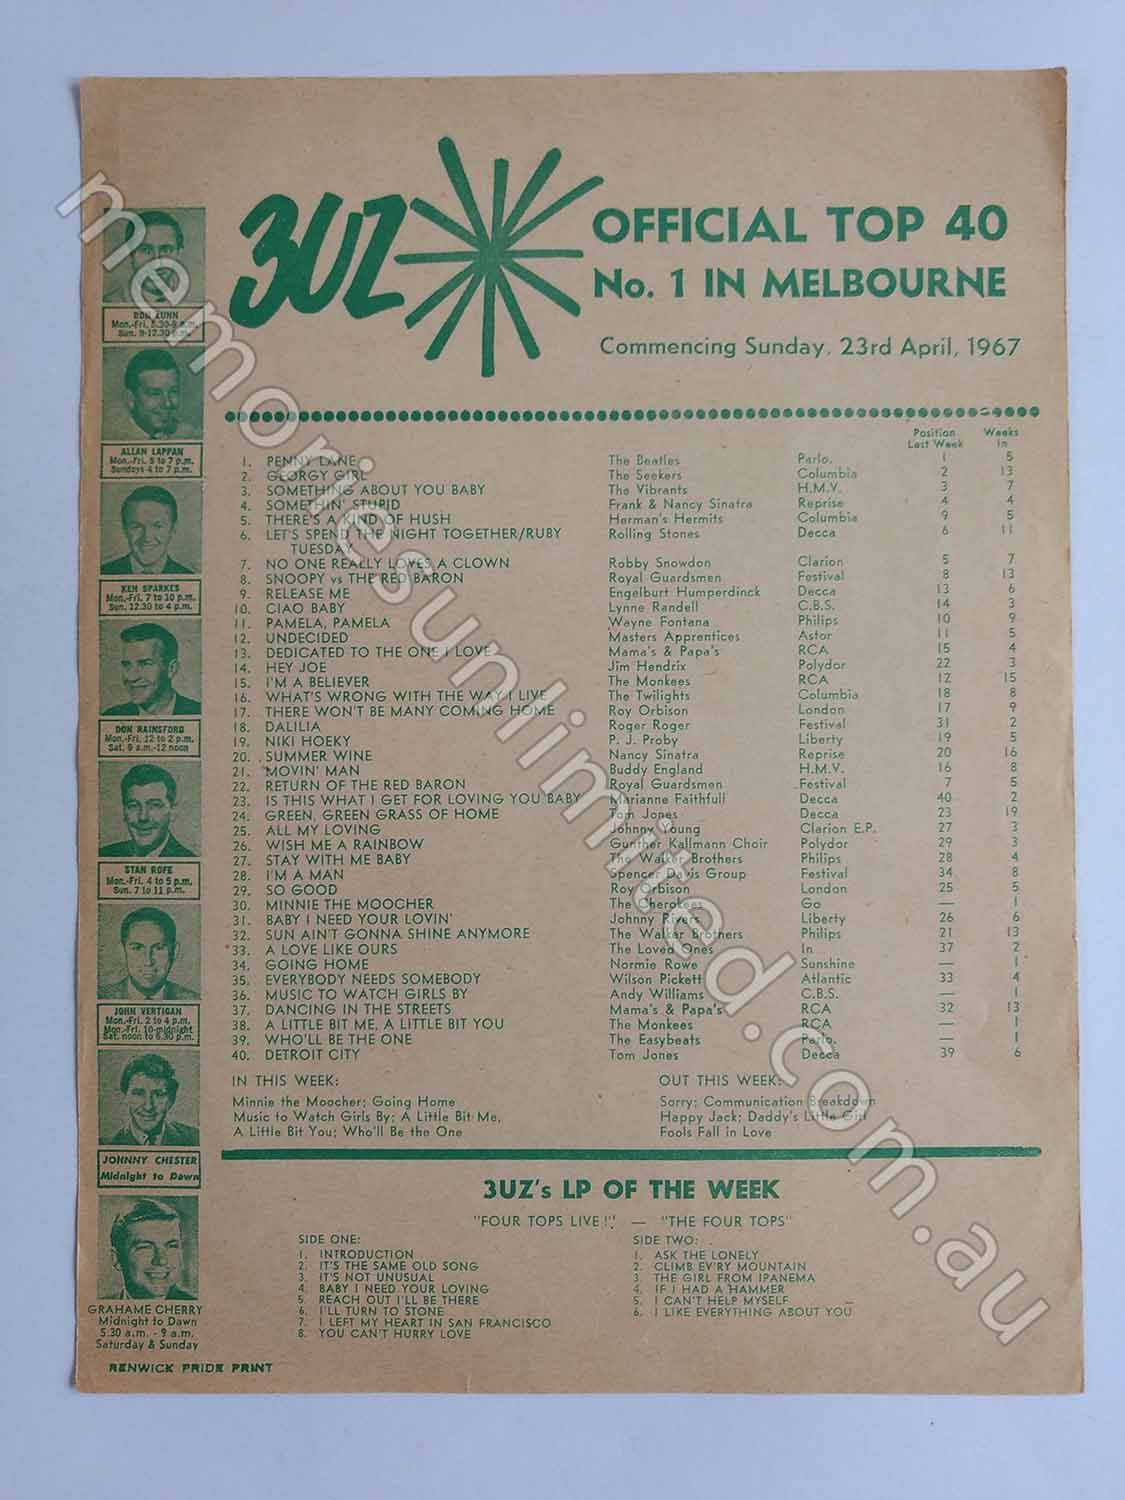 1967 04 23 OFFICIAL TOP 40